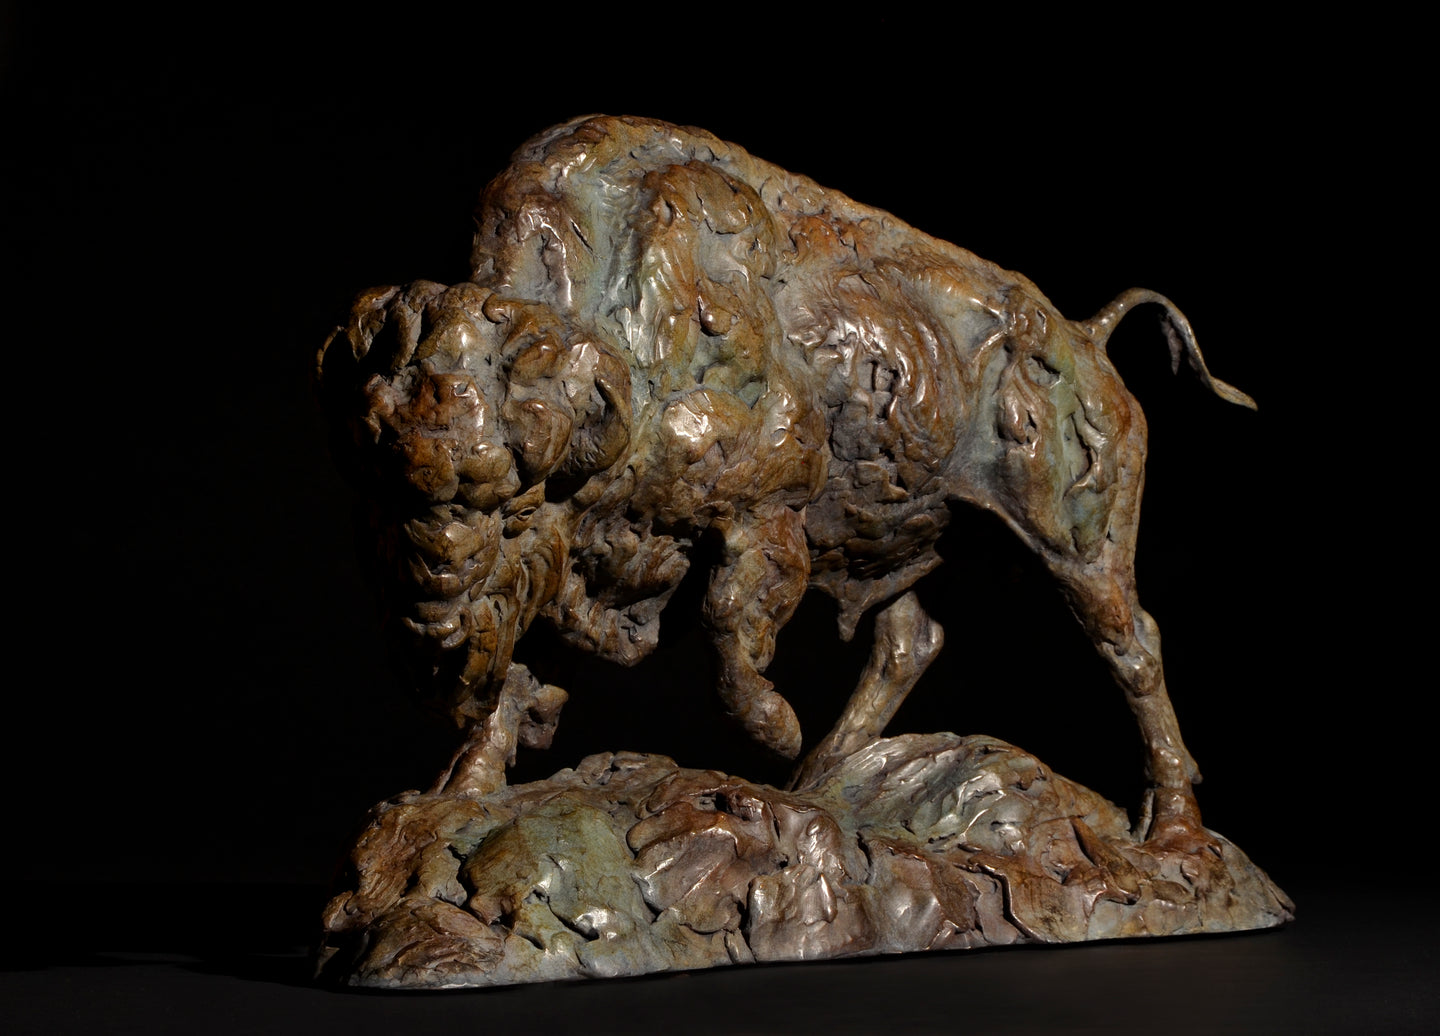 Mick Doellinger-Defiant-Limited Edition Sculpture